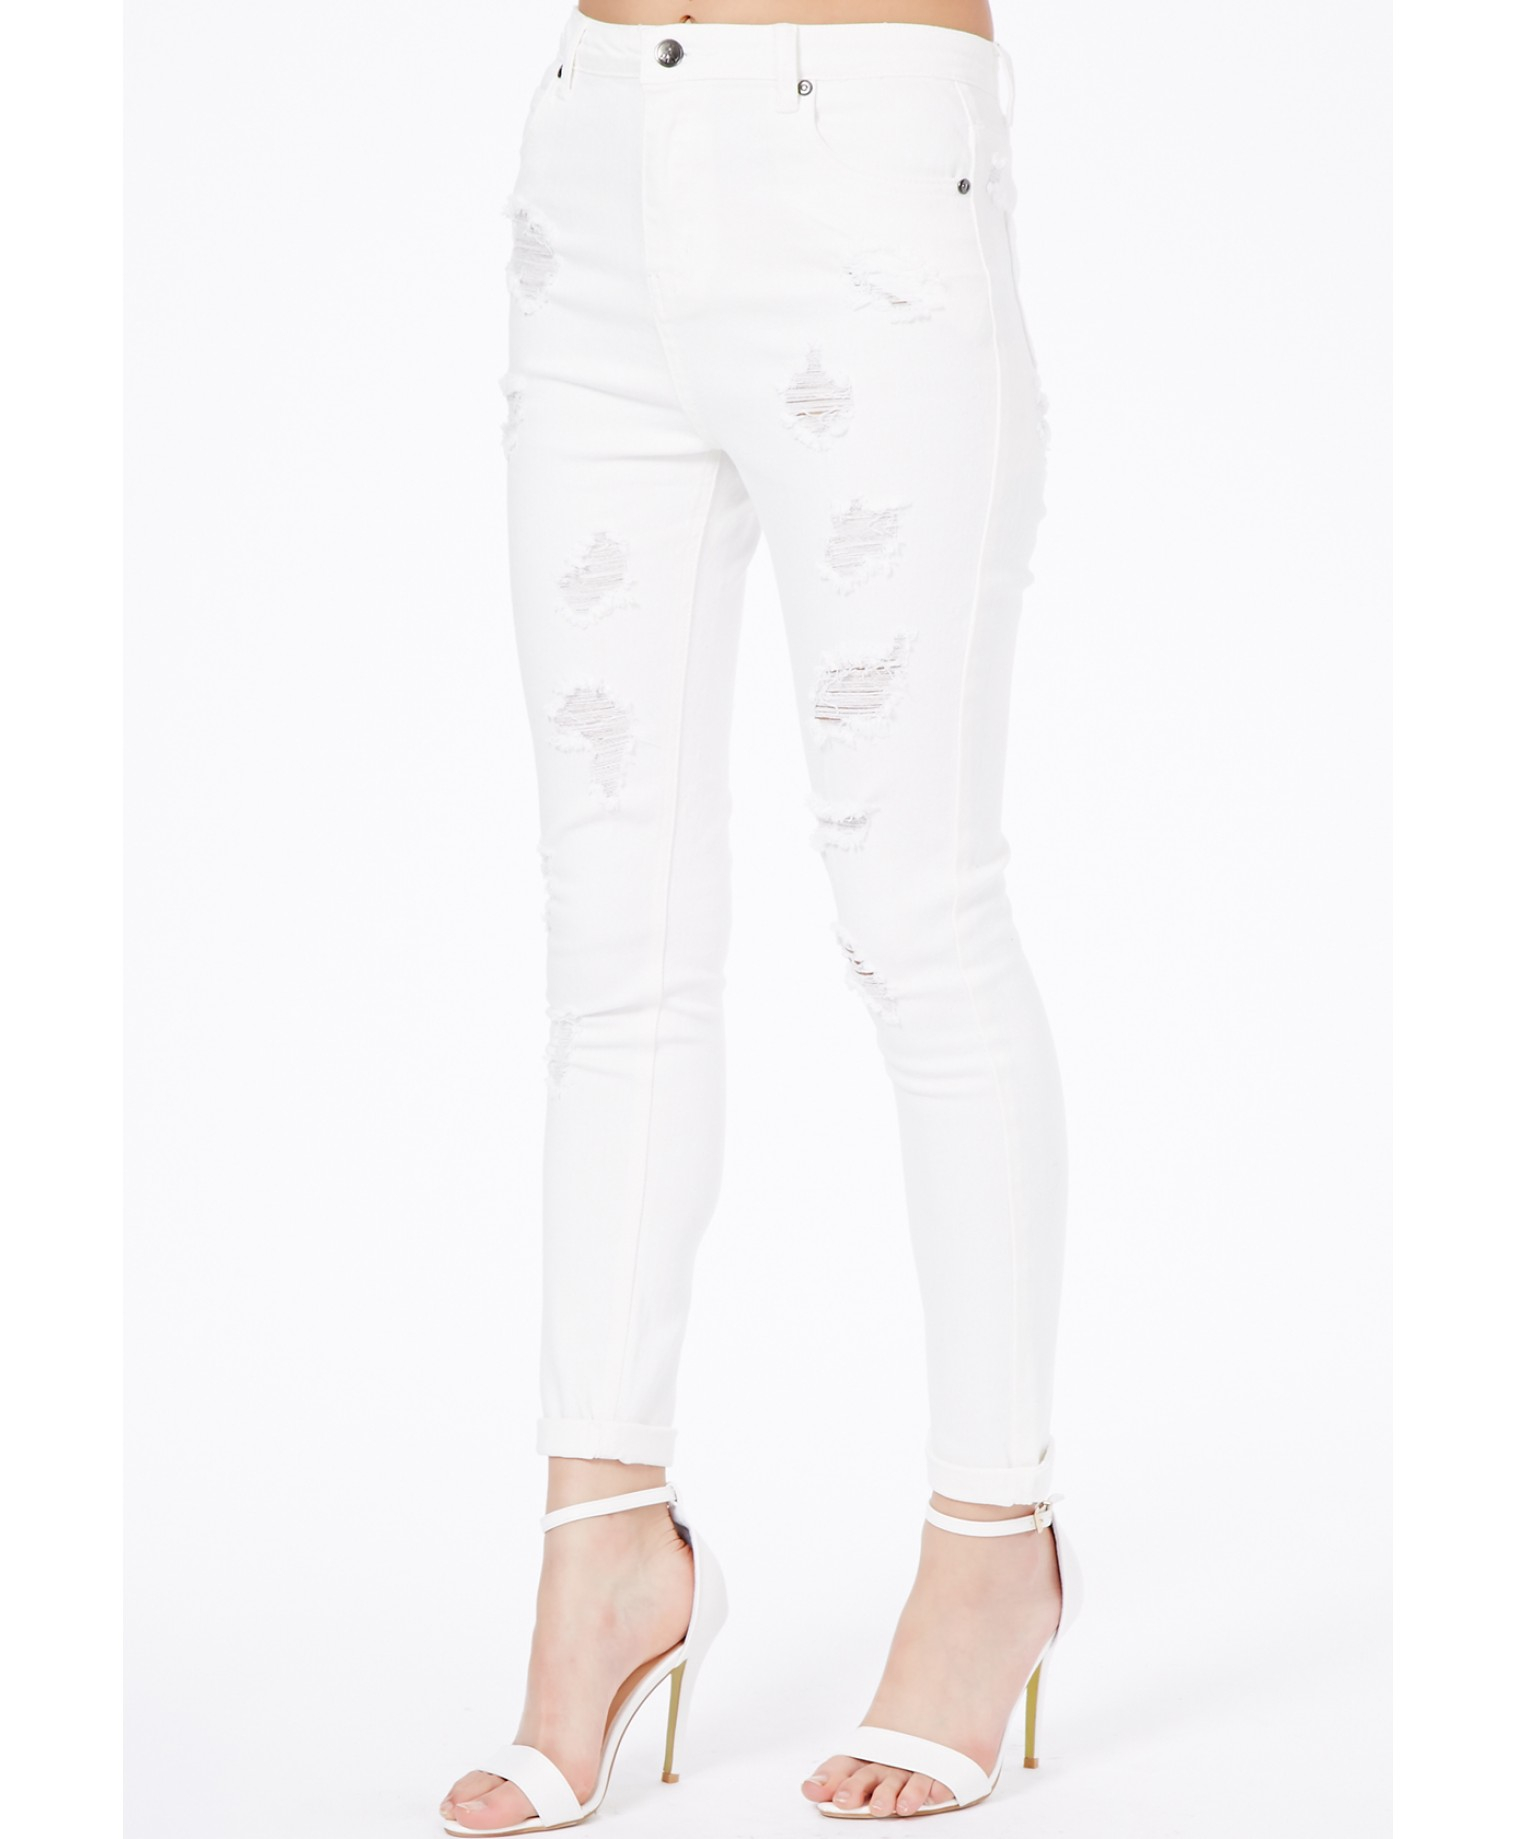 Missguided Edie High Waist Extreme Ripped Skinny Jeans In White in ...